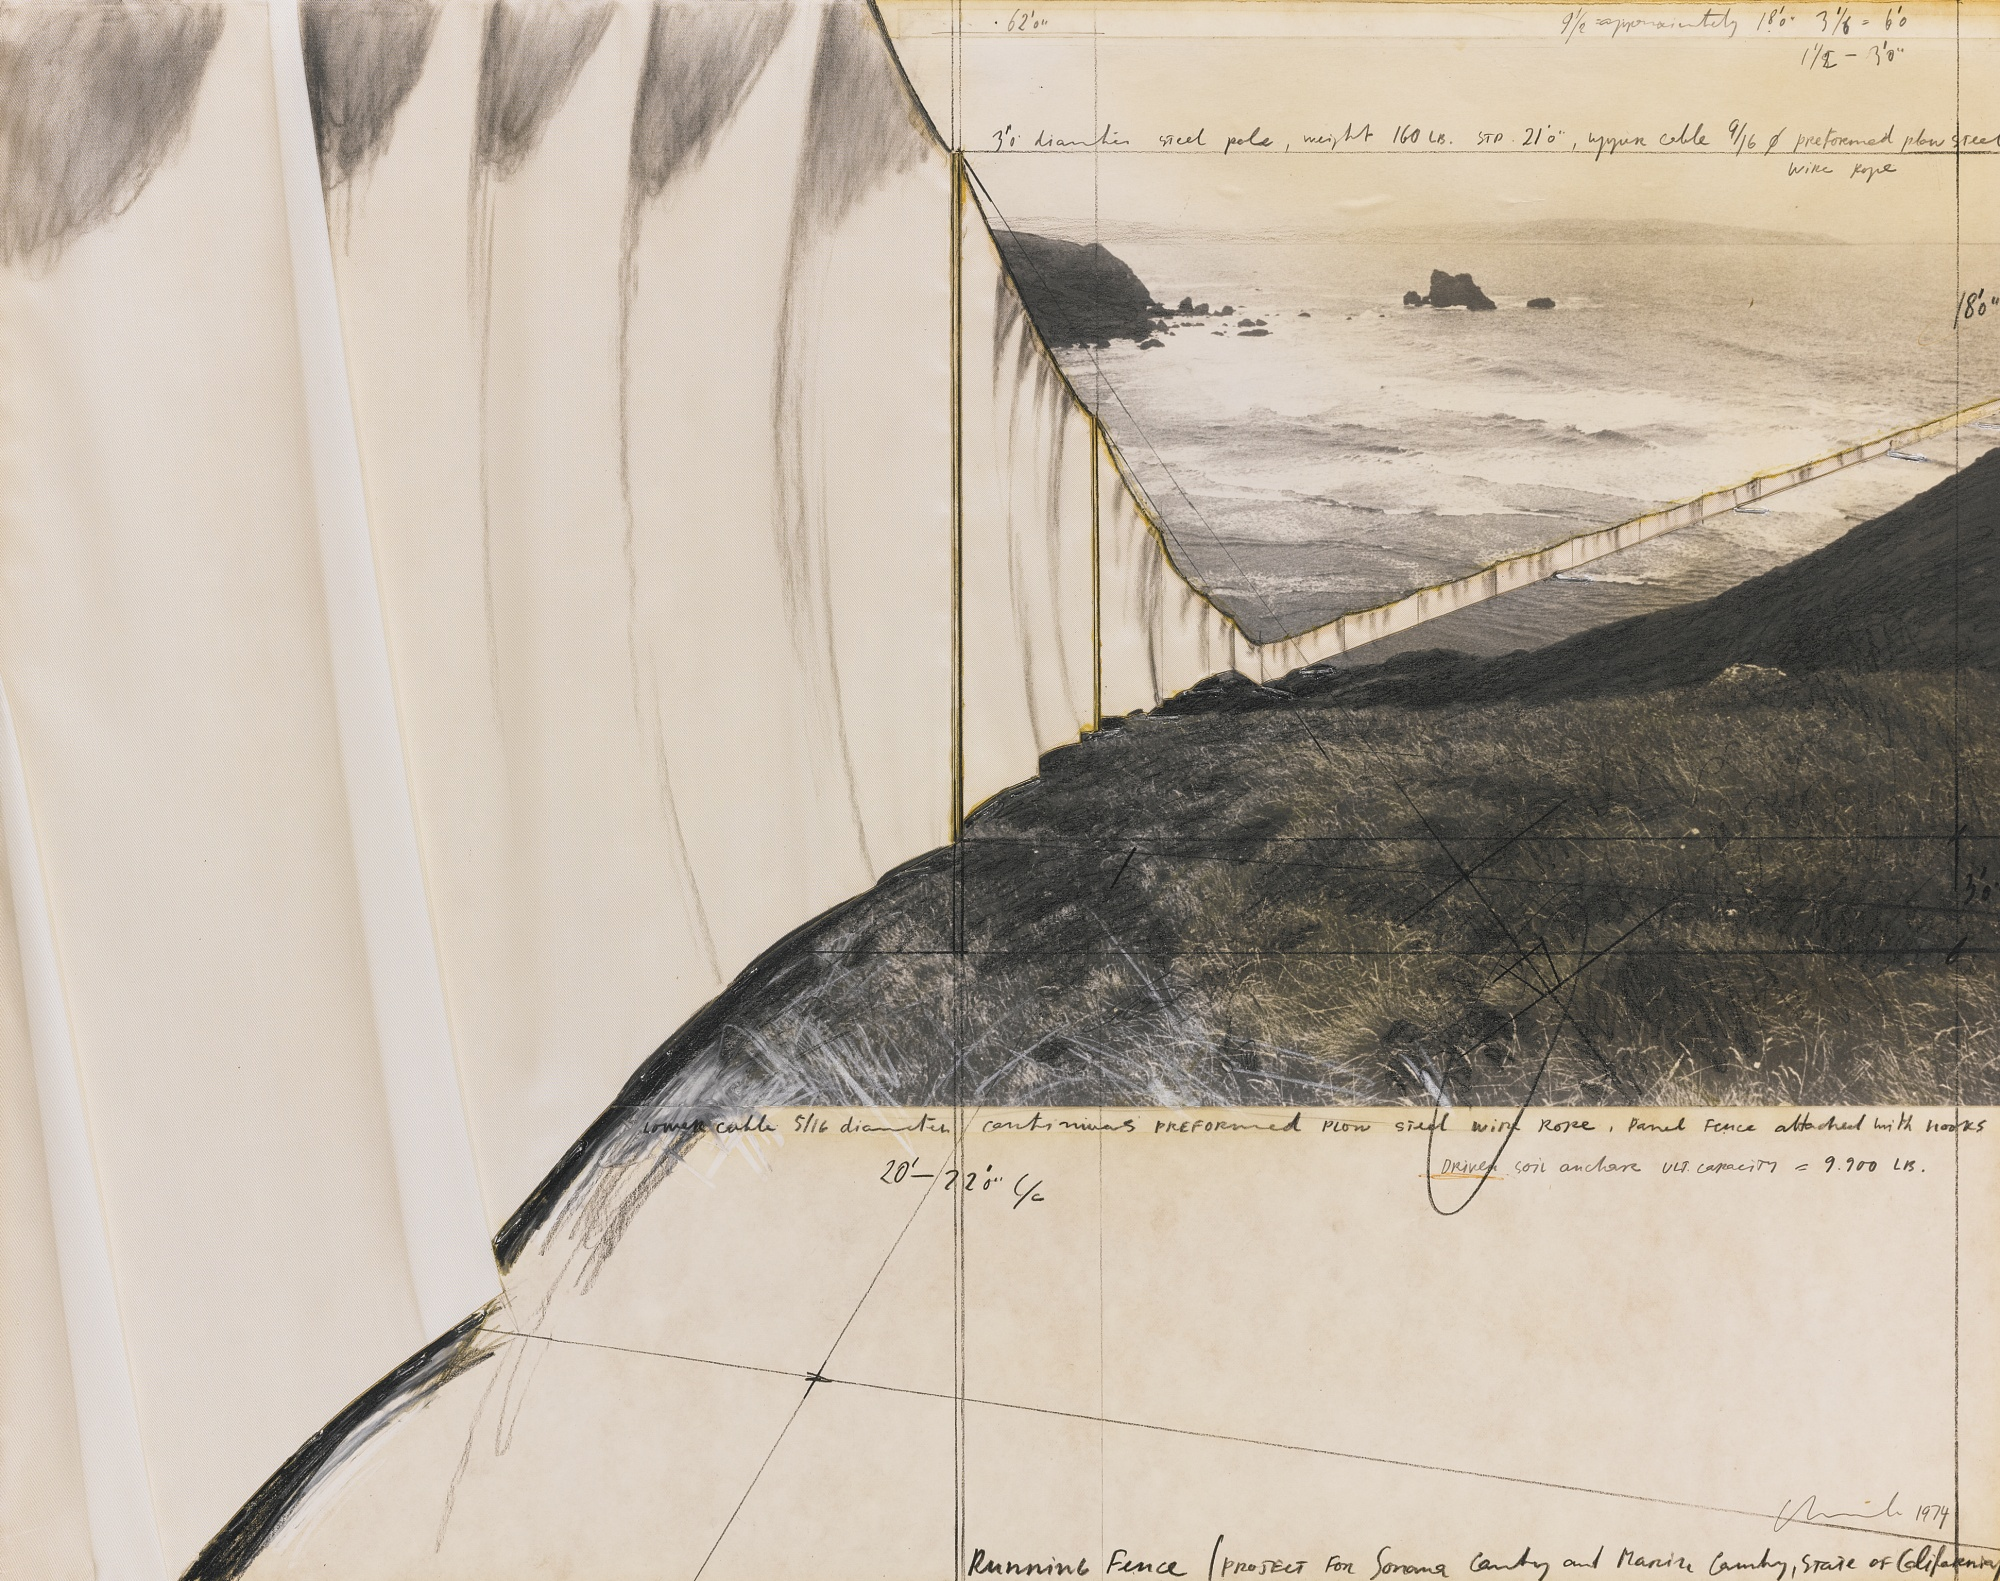 Christo and Jeanne-Claude-Running Fence (Project For Sonoma County And Marin County State Of California)-1974